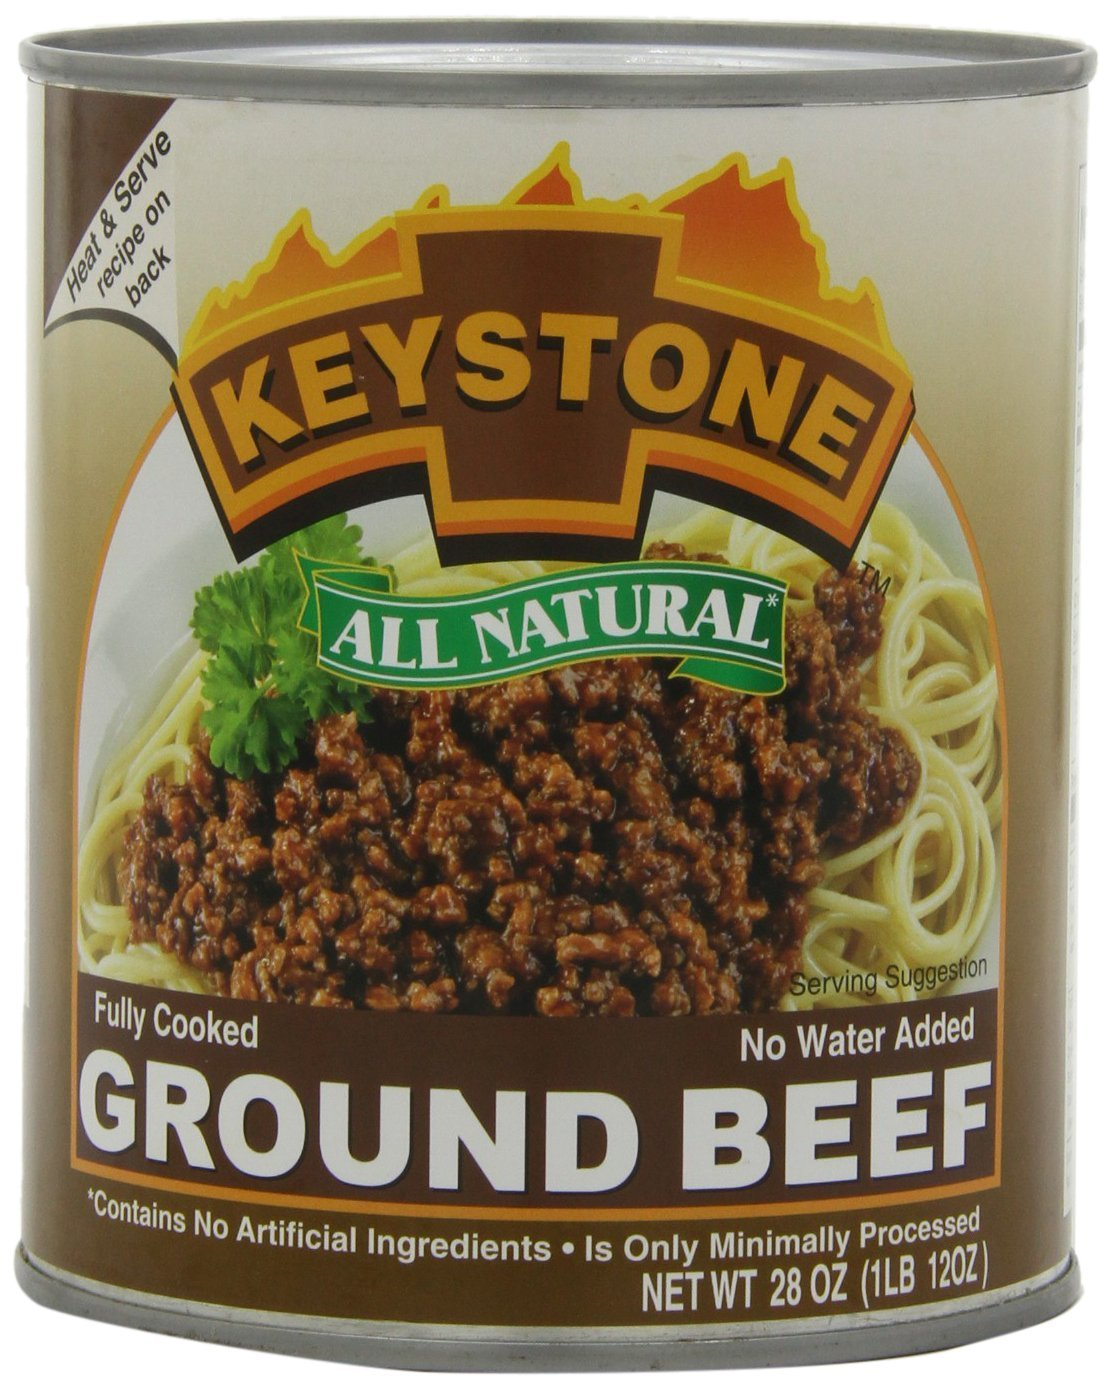 Keystone Meats All Natural Ground Beef, 28 Ounce - Pack of 3